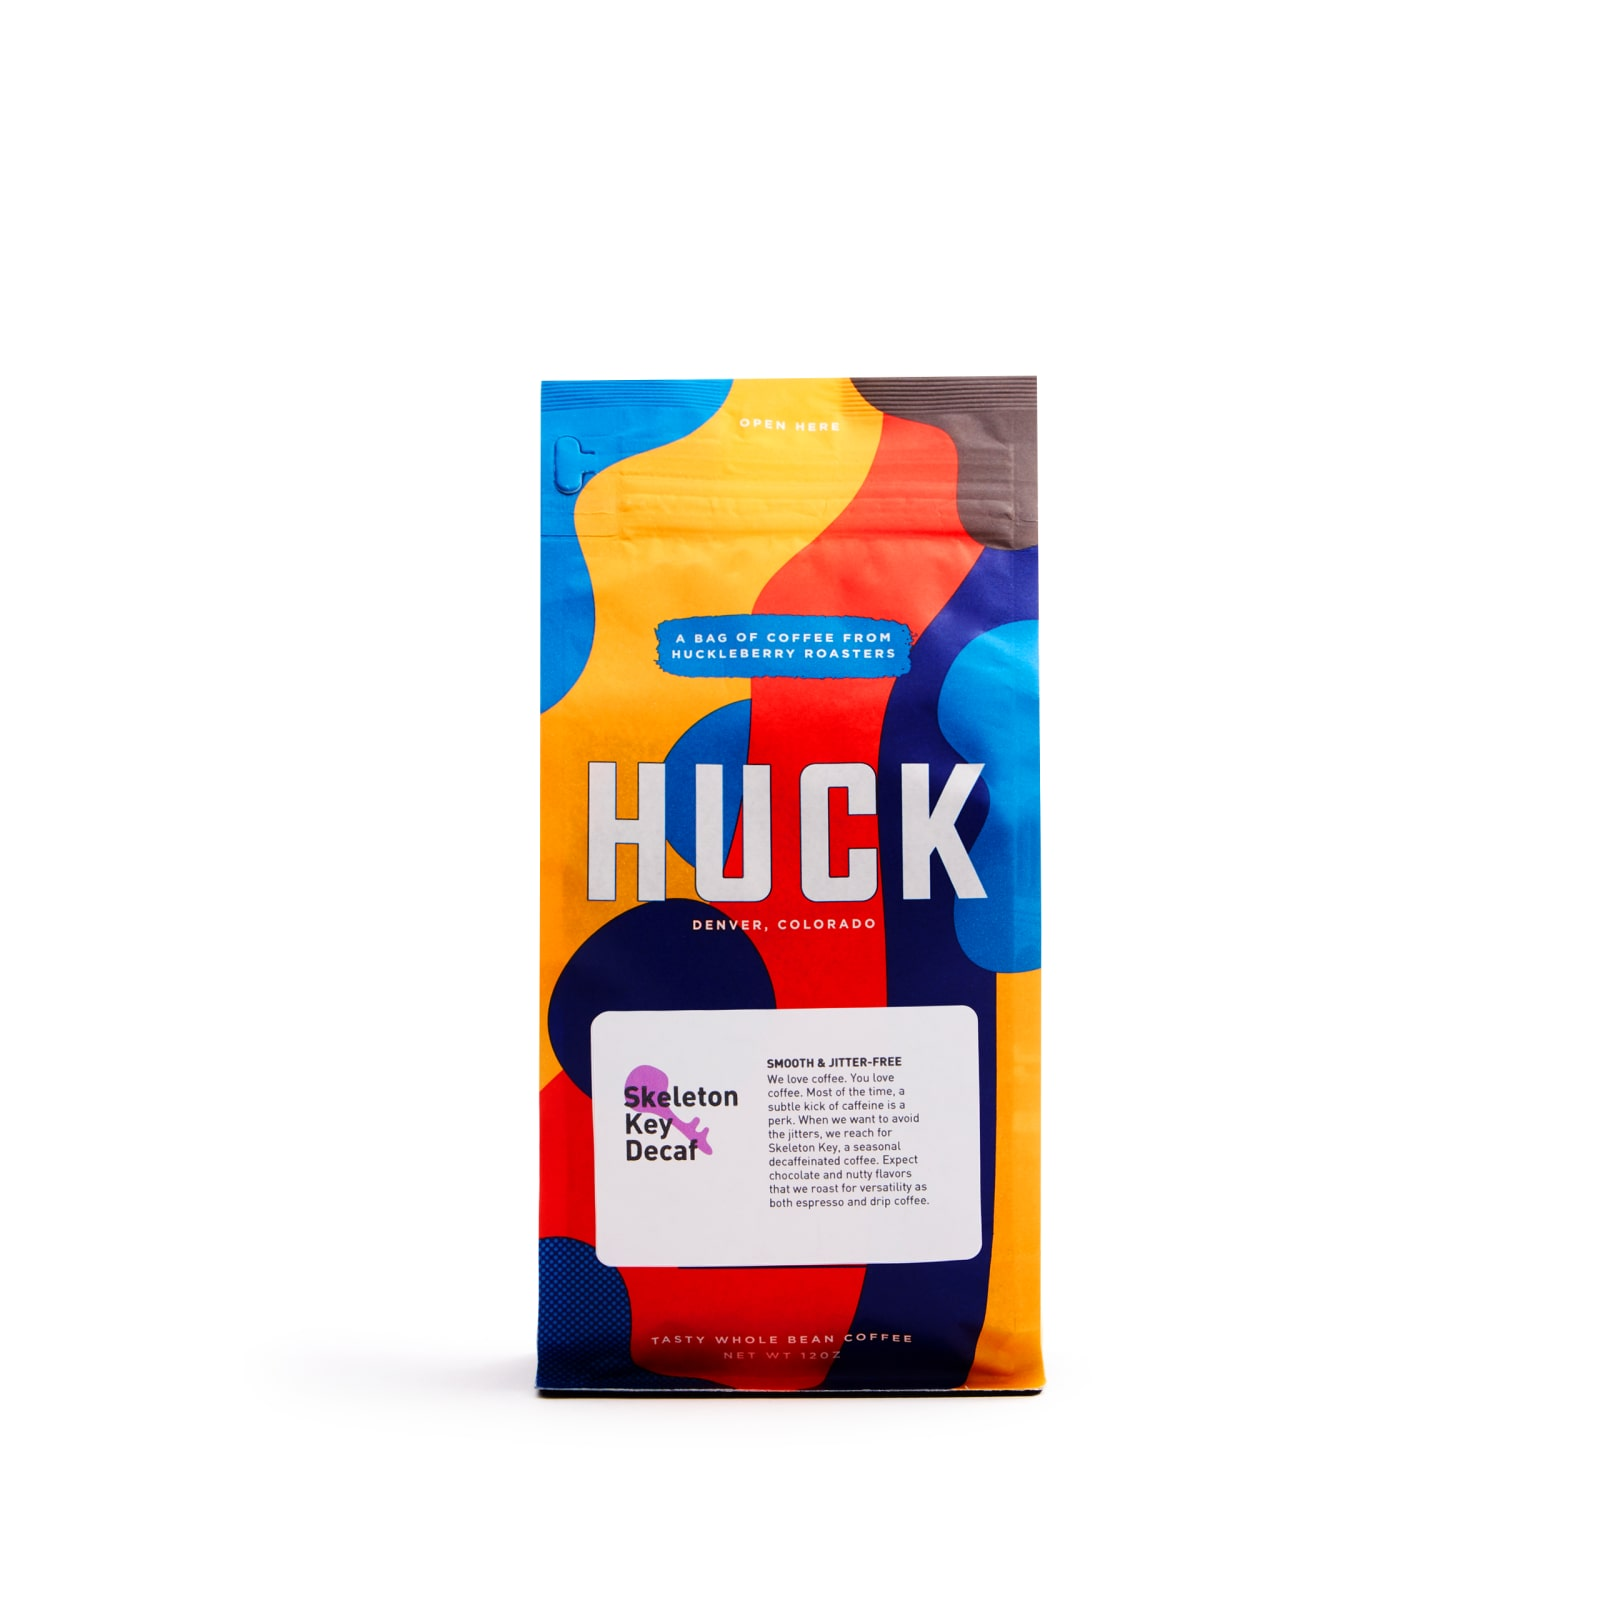 Huck skeleton key decaf